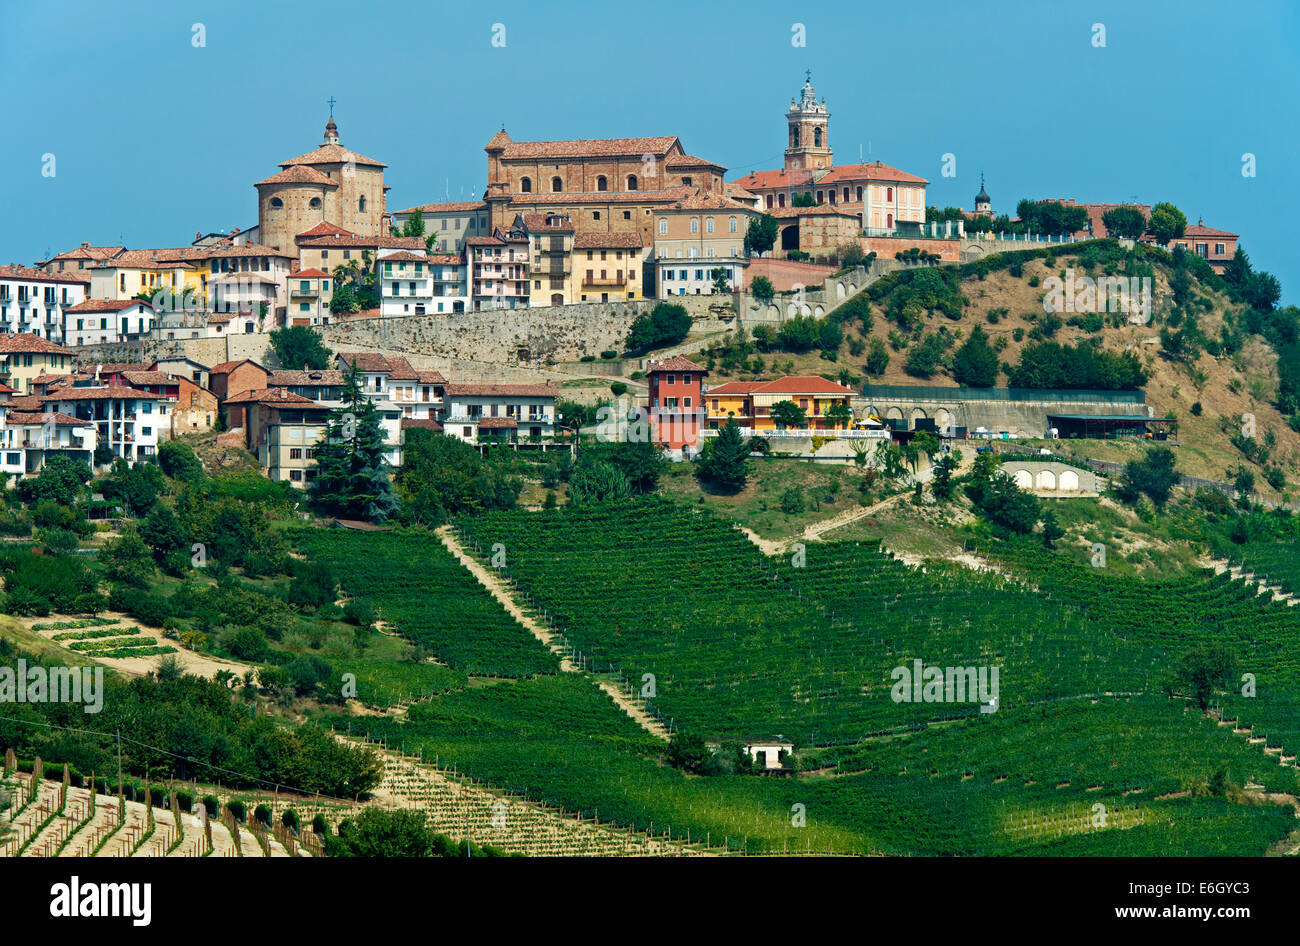 View at La Morra, Langhe, Piedmont, Italy - Stock Image